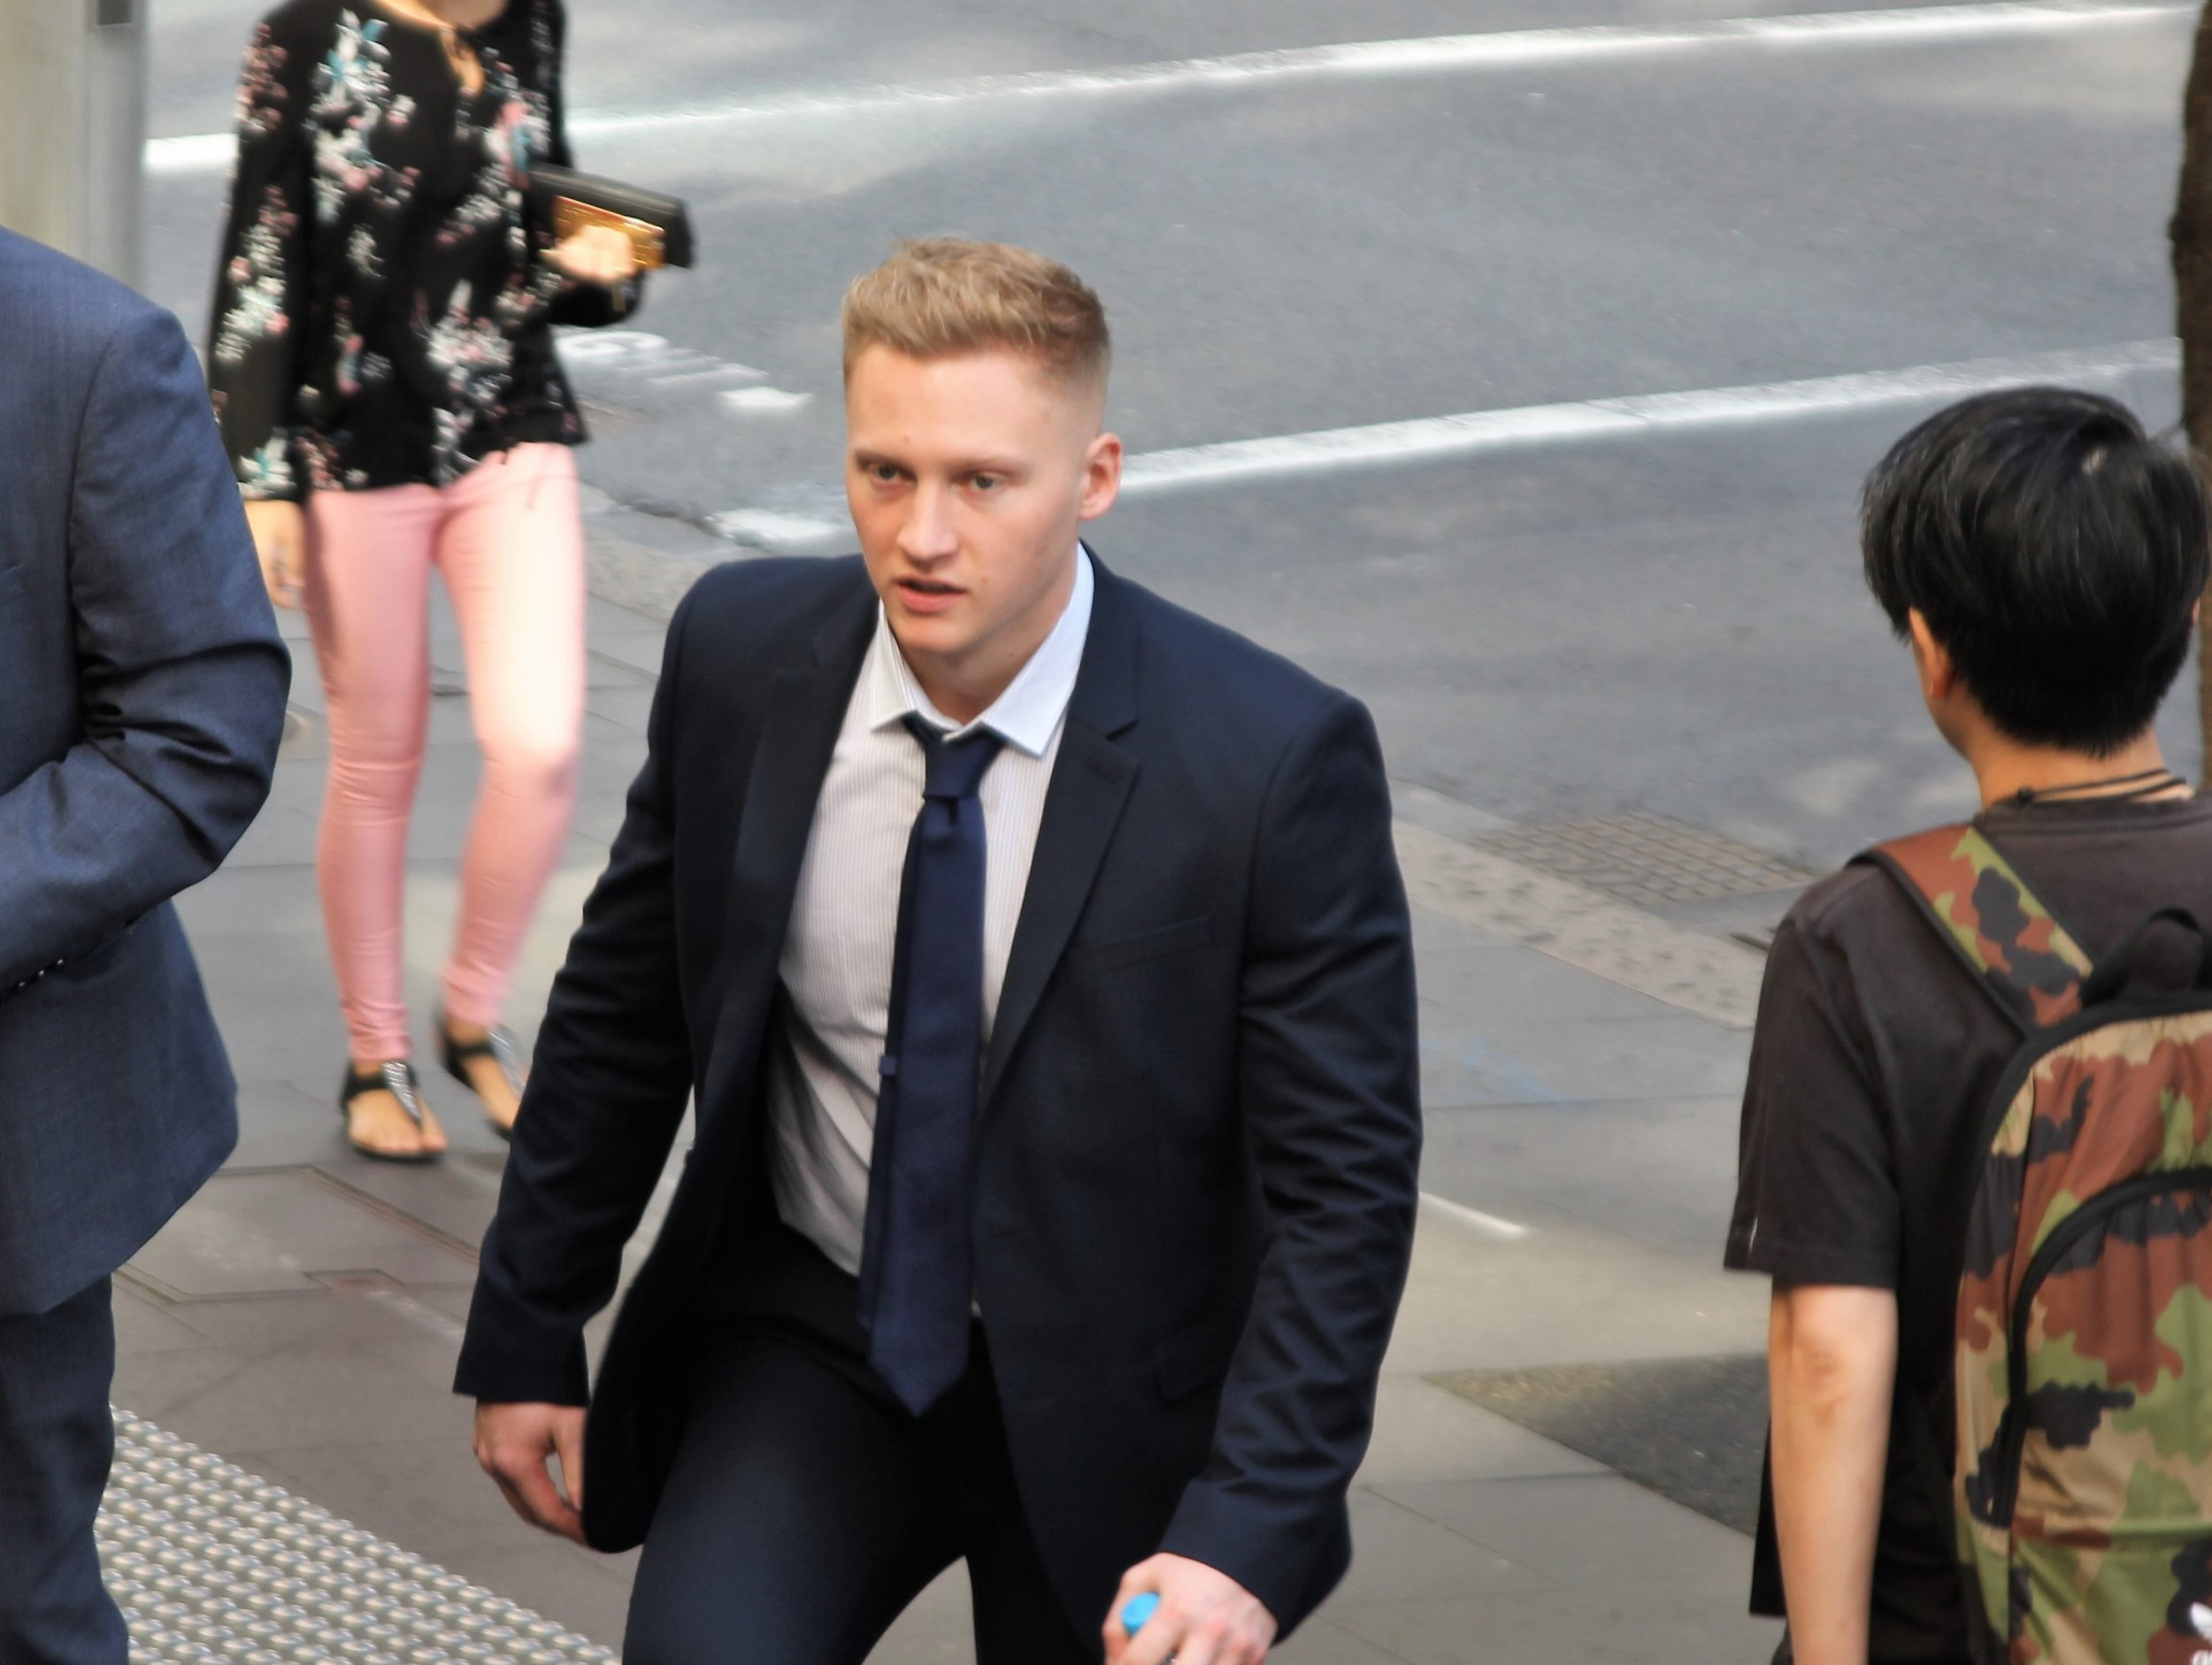 Sam Oliver arriving at Downing Centre court in Sydney, Australia. British man Sam Oliver is standing trial at the court, accused of a one-punch attack on former captain of Australia's Rugby Sevens James Stannard. PRESS ASSOCIATION Photo. Picture date: Wednesday September 12. See PA story COURTS Australia. Photo credit should read: Alex Britton/PA Wire